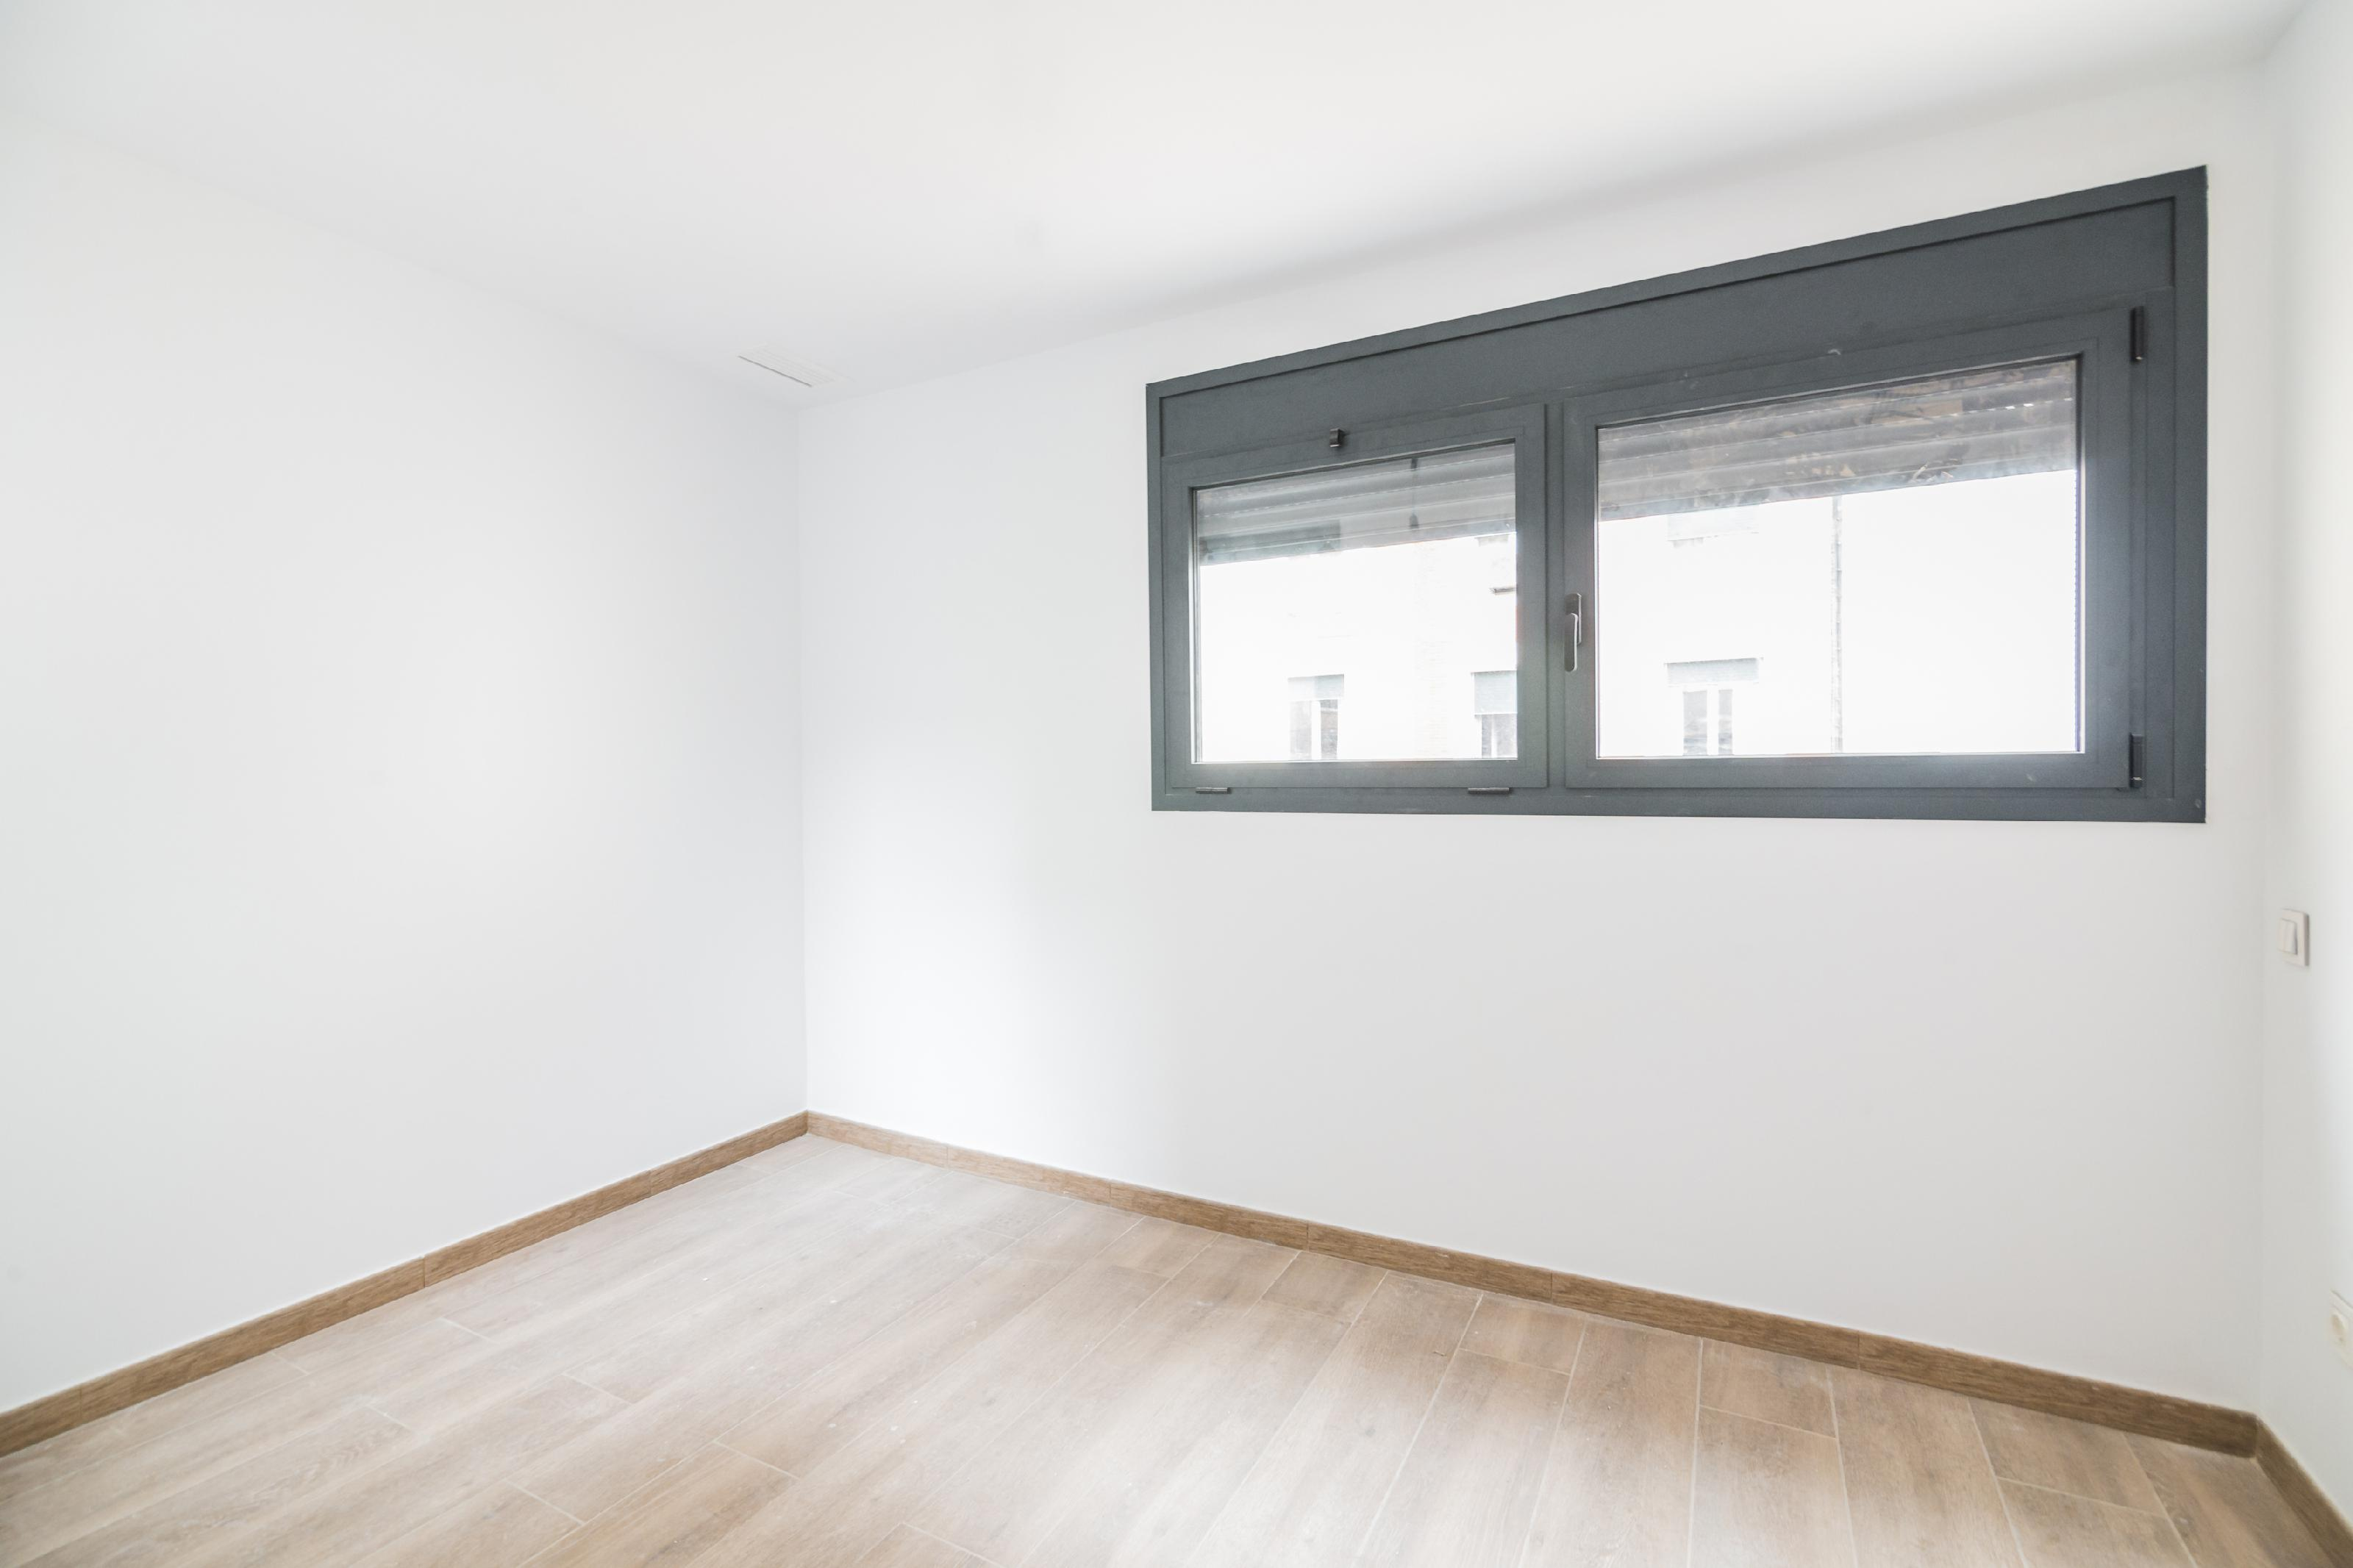 220653 Penthouse for sale in Sarrià-Sant Gervasi, Sant Gervasi-Galvany 9